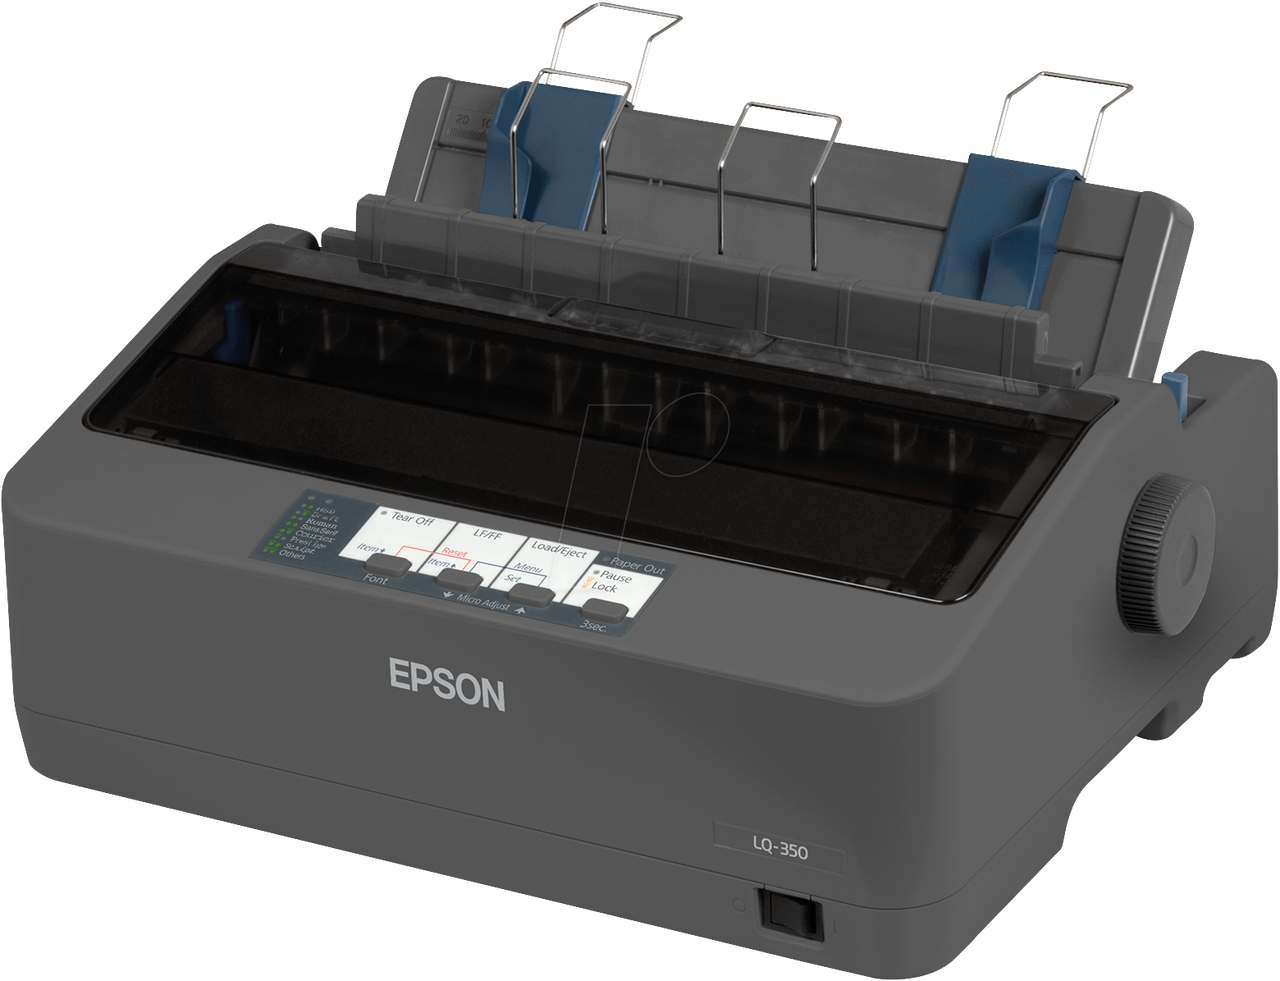 EPSON LQ 1280 DRIVER DOWNLOAD